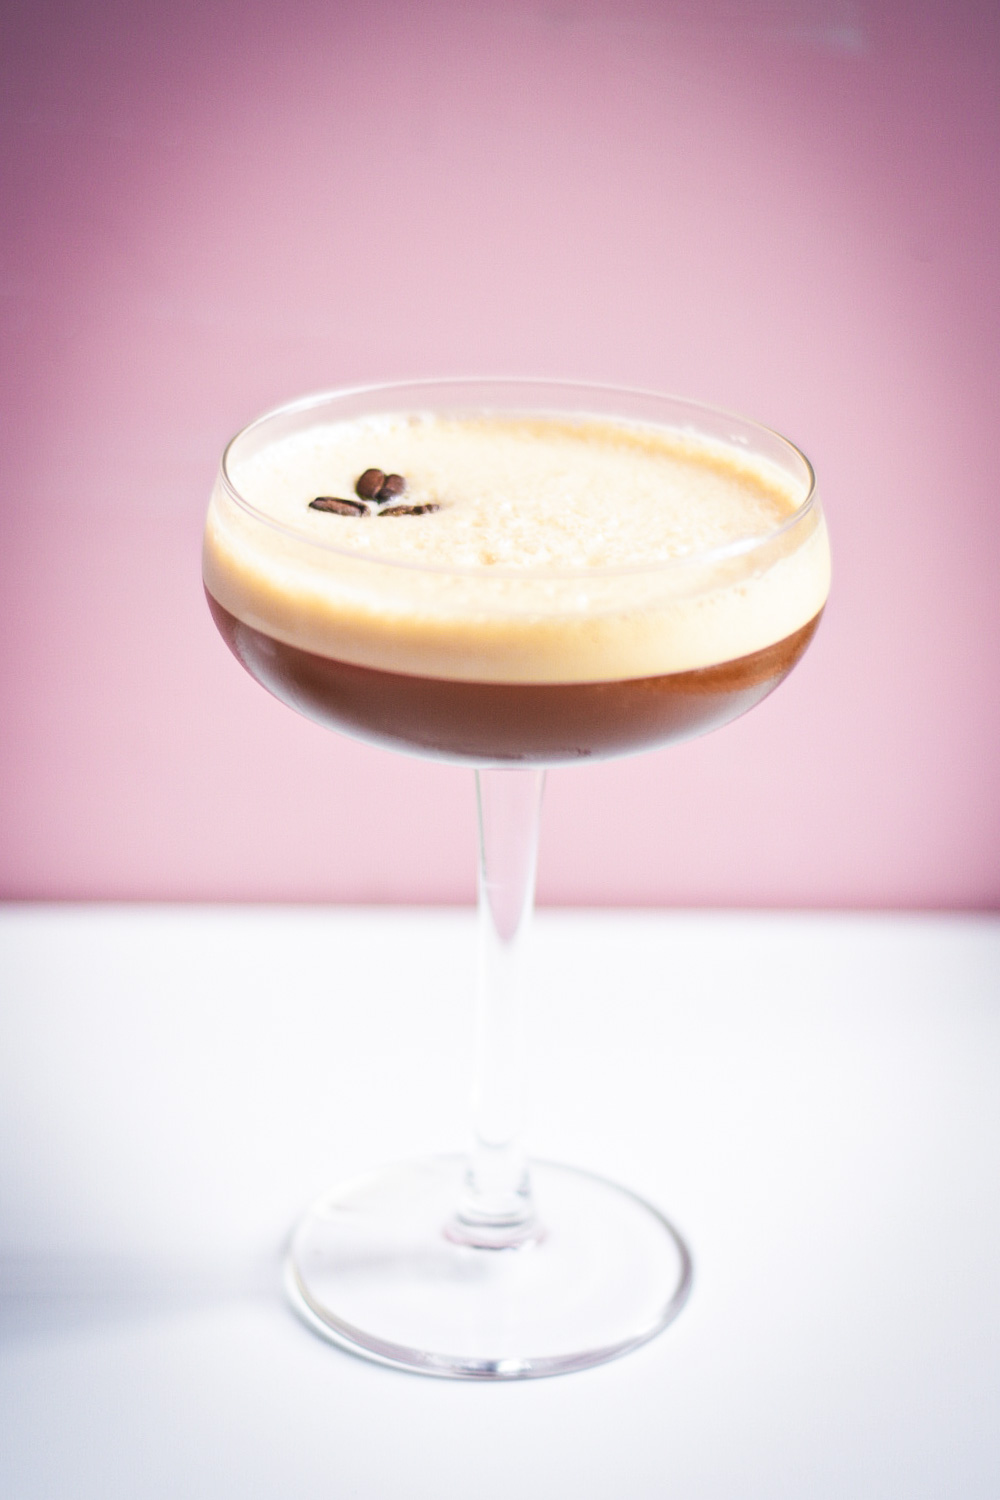 classic espresso martini recipe, ultimate espresso martini recipe, blog drinks espresso martini, martini blog, Irish espresso martini, Irish coffee espresso martini, Blonde espresso martini, GastroGays Espresso Martini, GastroGays Blonde Espresso Martini, GastroGays cocktail, kahlua espresso martini alternative, coffee liqueur espresso martini alternative, vodka espresso cocktail, Black Twist Espresso Martini,